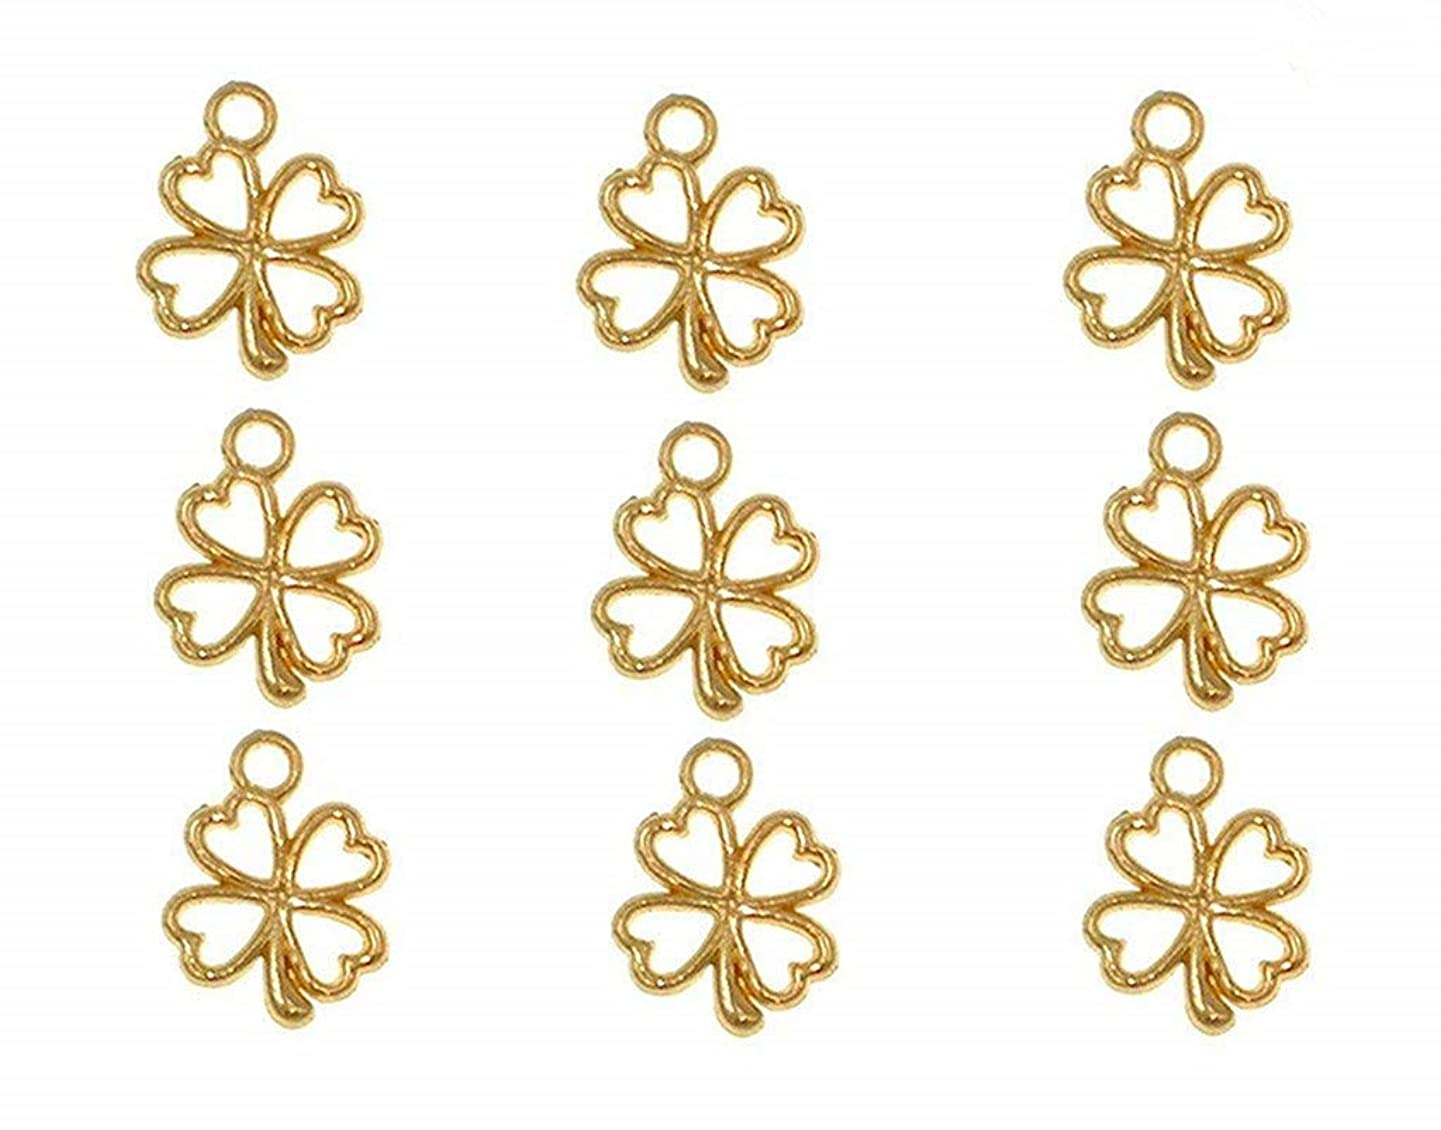 100pcs Four Leaf Clover Lucky Charms Pendents for DIY Bracelet Necklace Jewelry Making Findings(Golden)